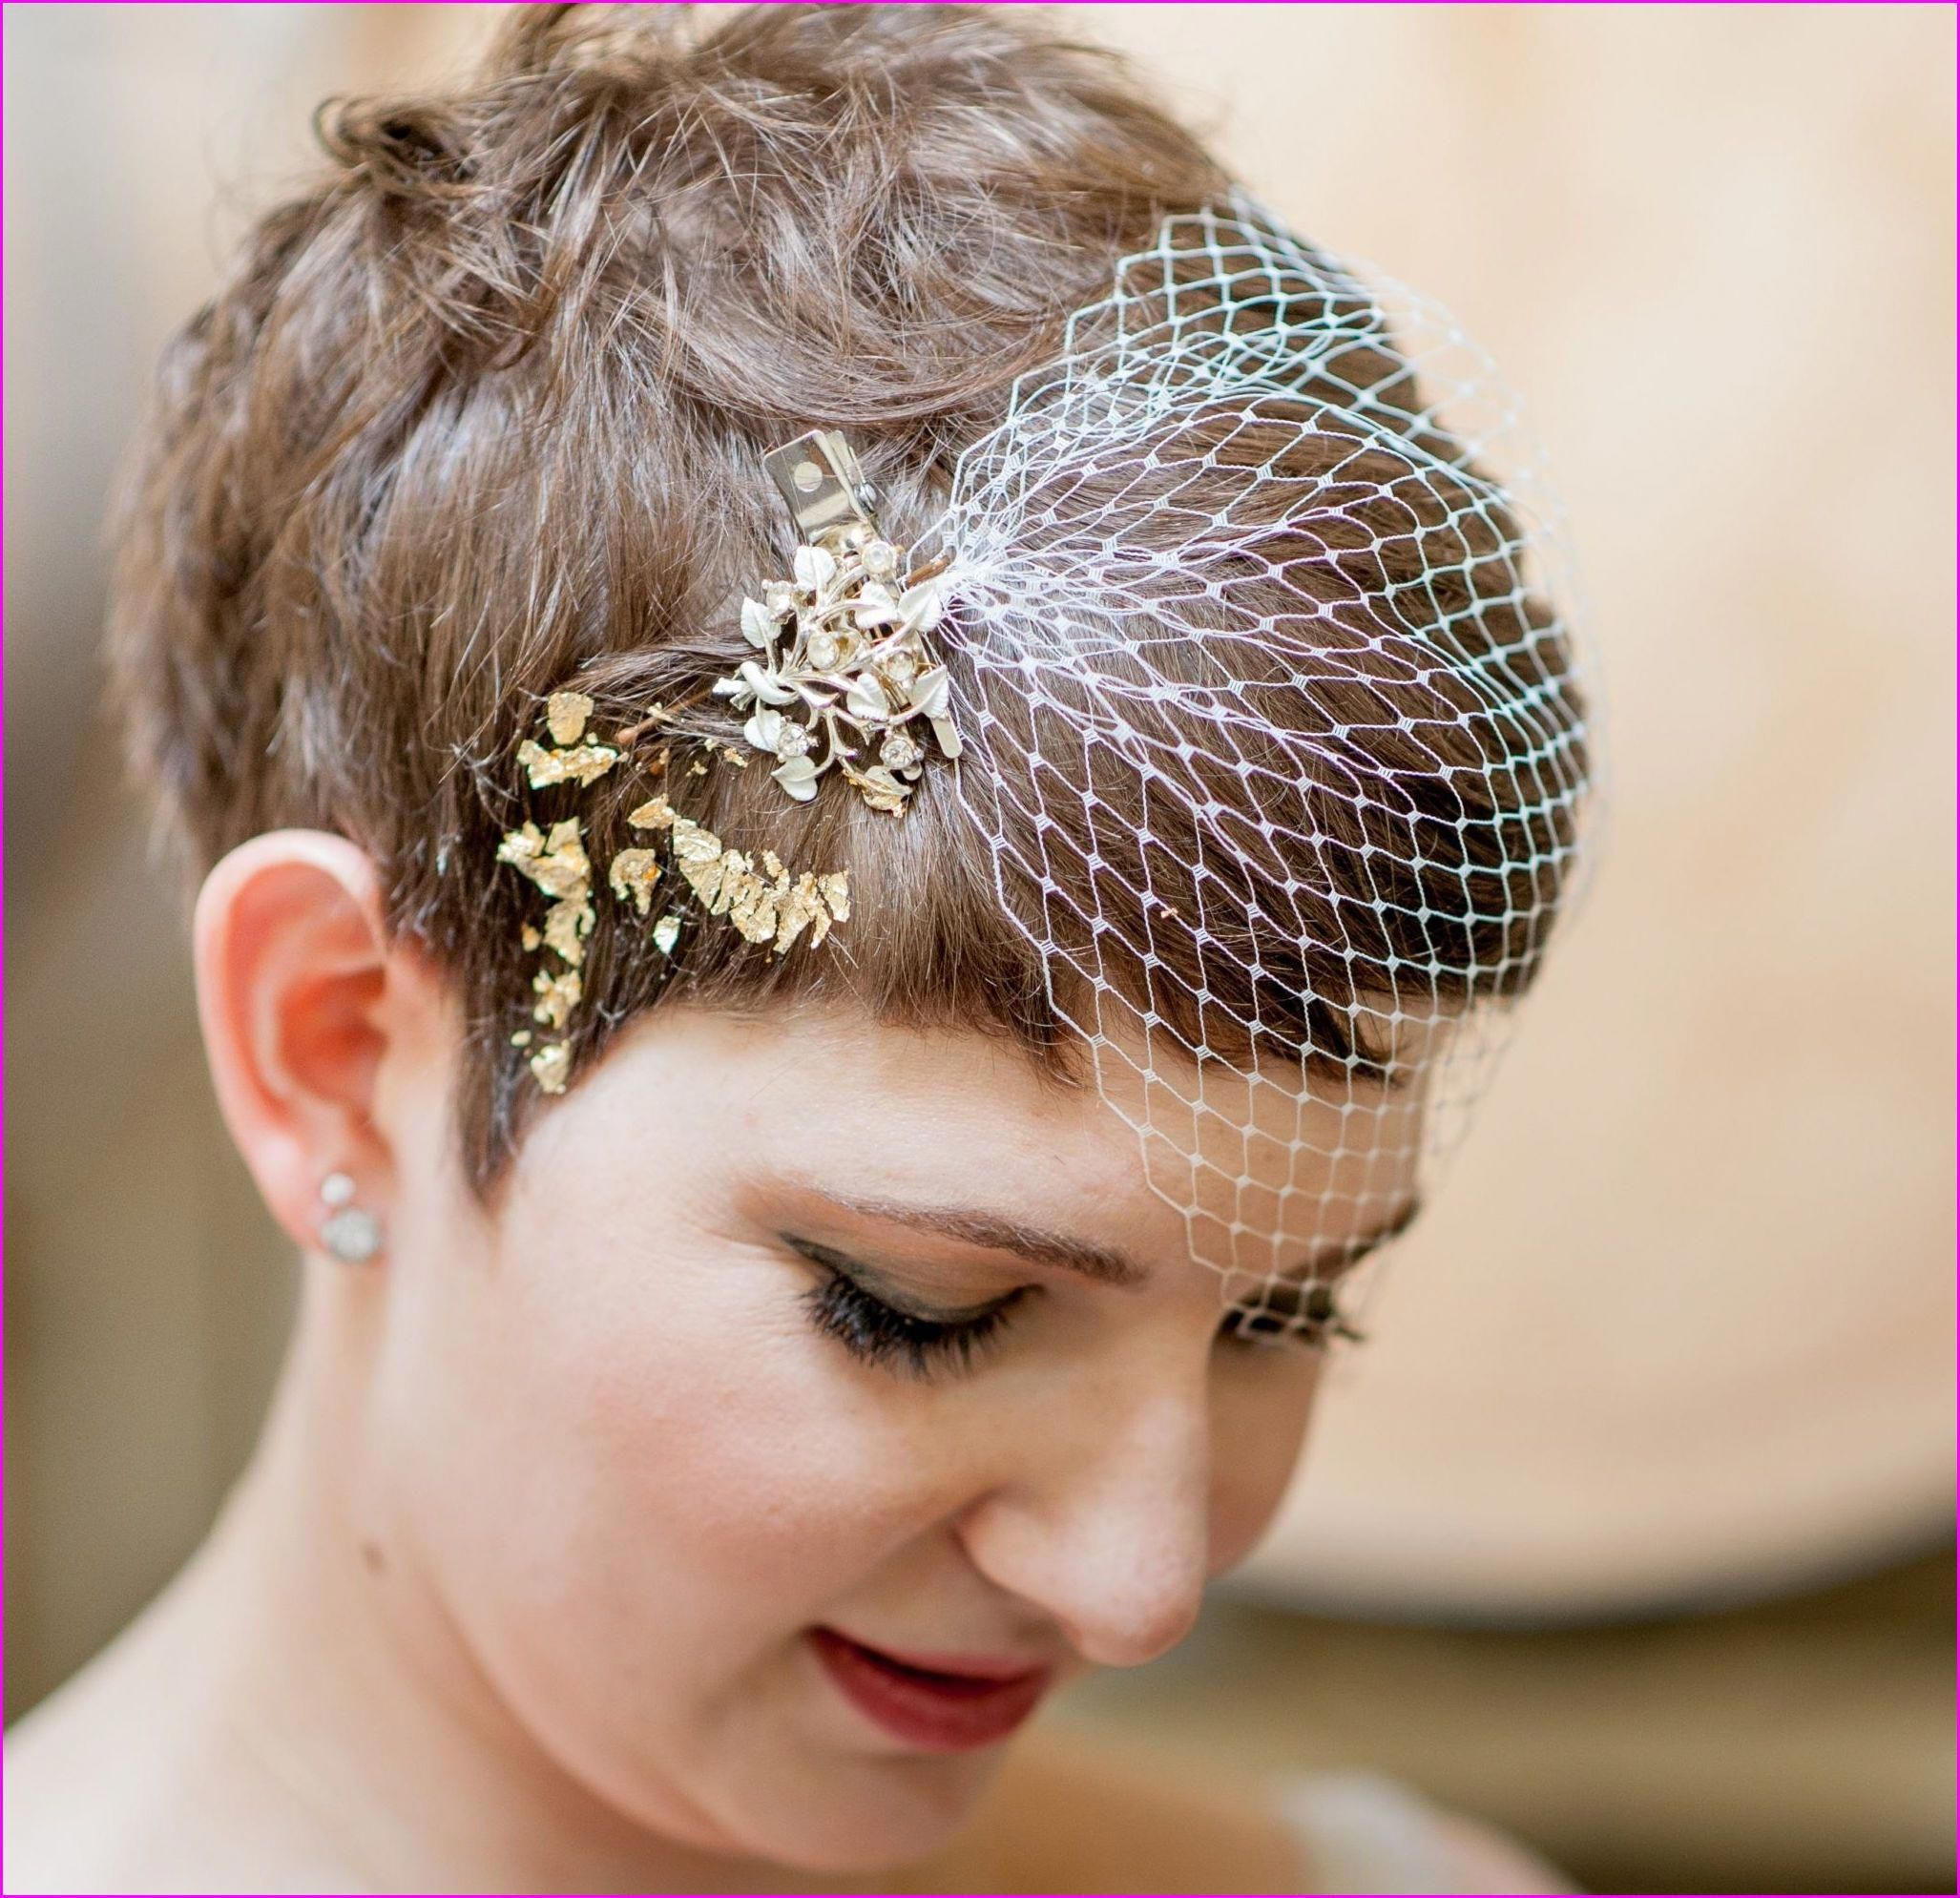 20 short pixie wedding hairstyles, don't let the length fool